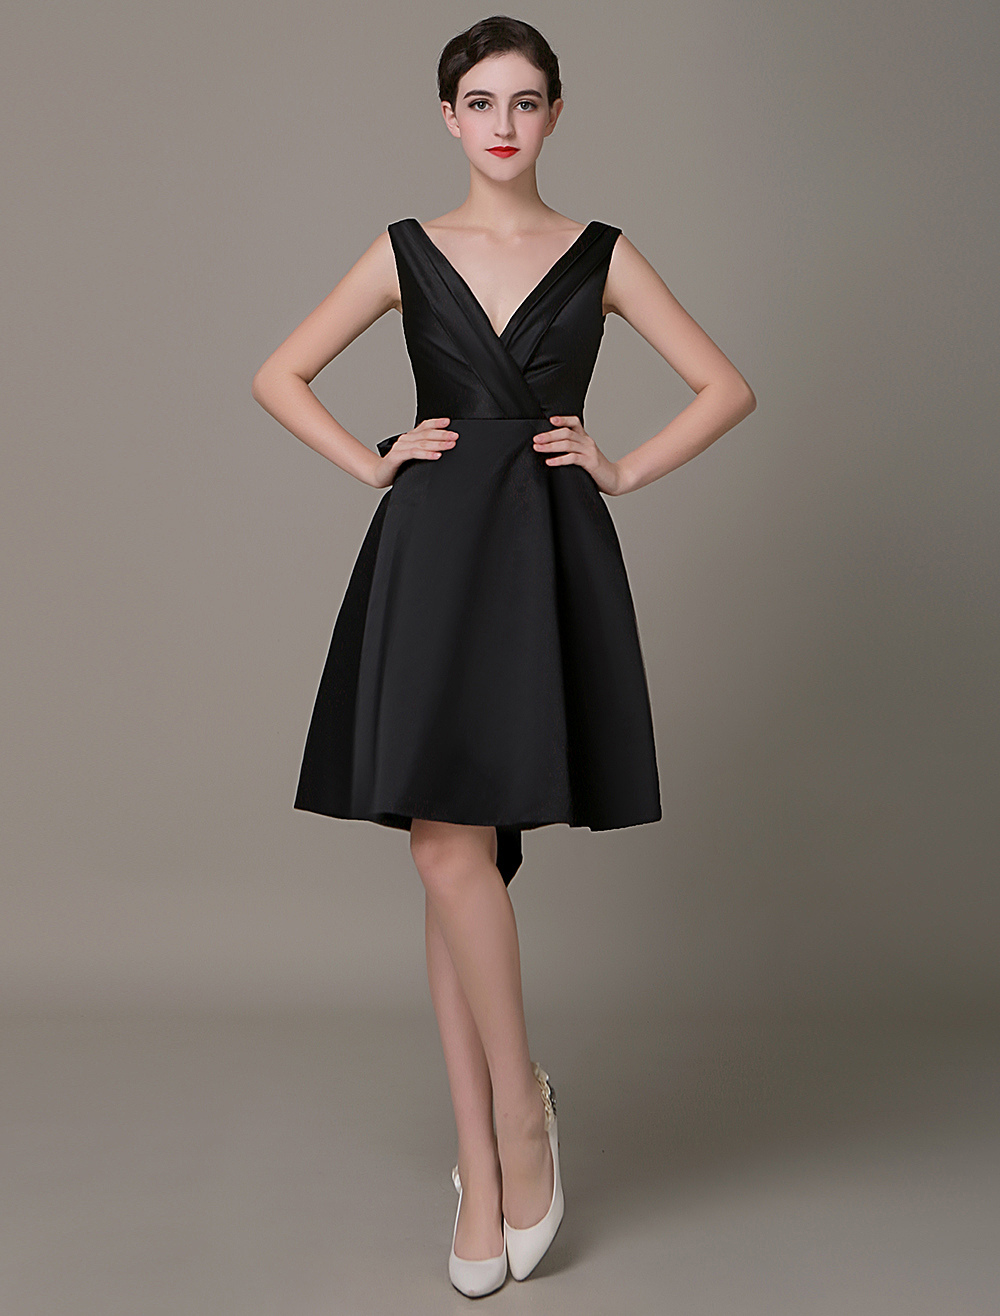 Plunging Black Cocktail Dress Pleated Bow Belt A-line Little Black Dress